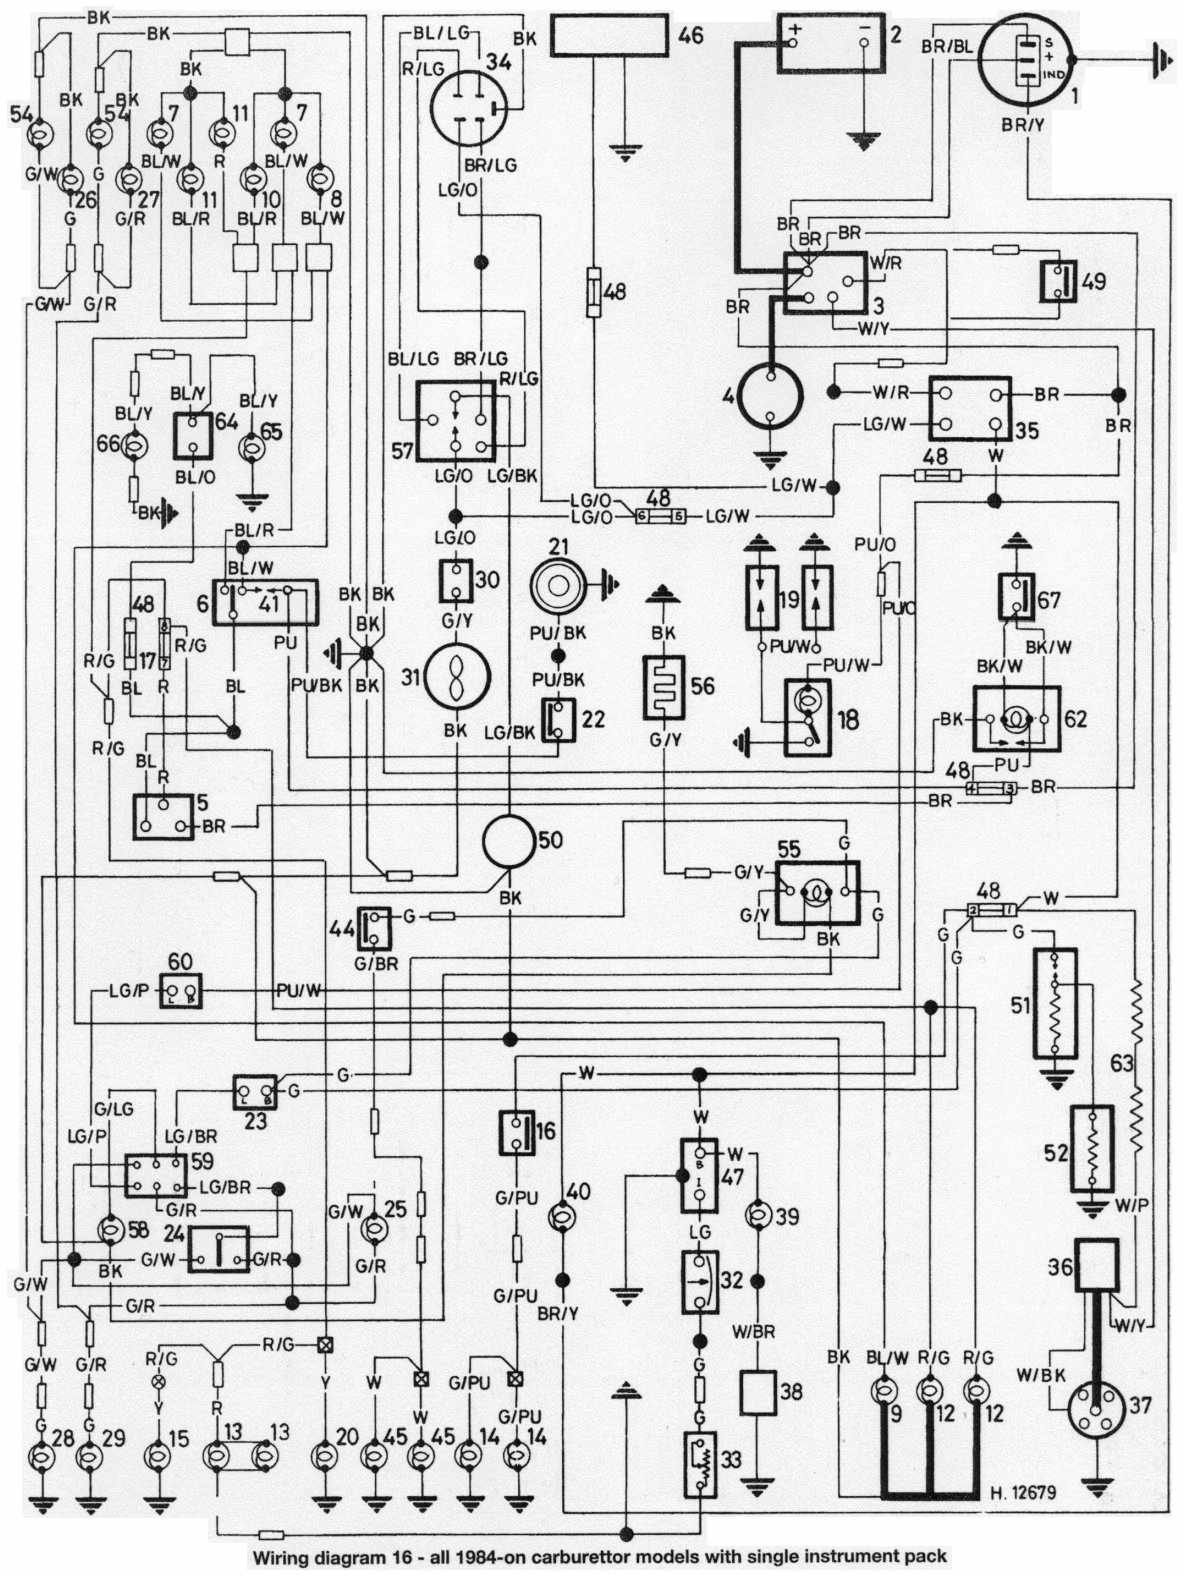 medium resolution of mini cooper 2003 wiring diagram wiring harness wiring diagram residential electrical wiring diagrams cooper wiring diagrams